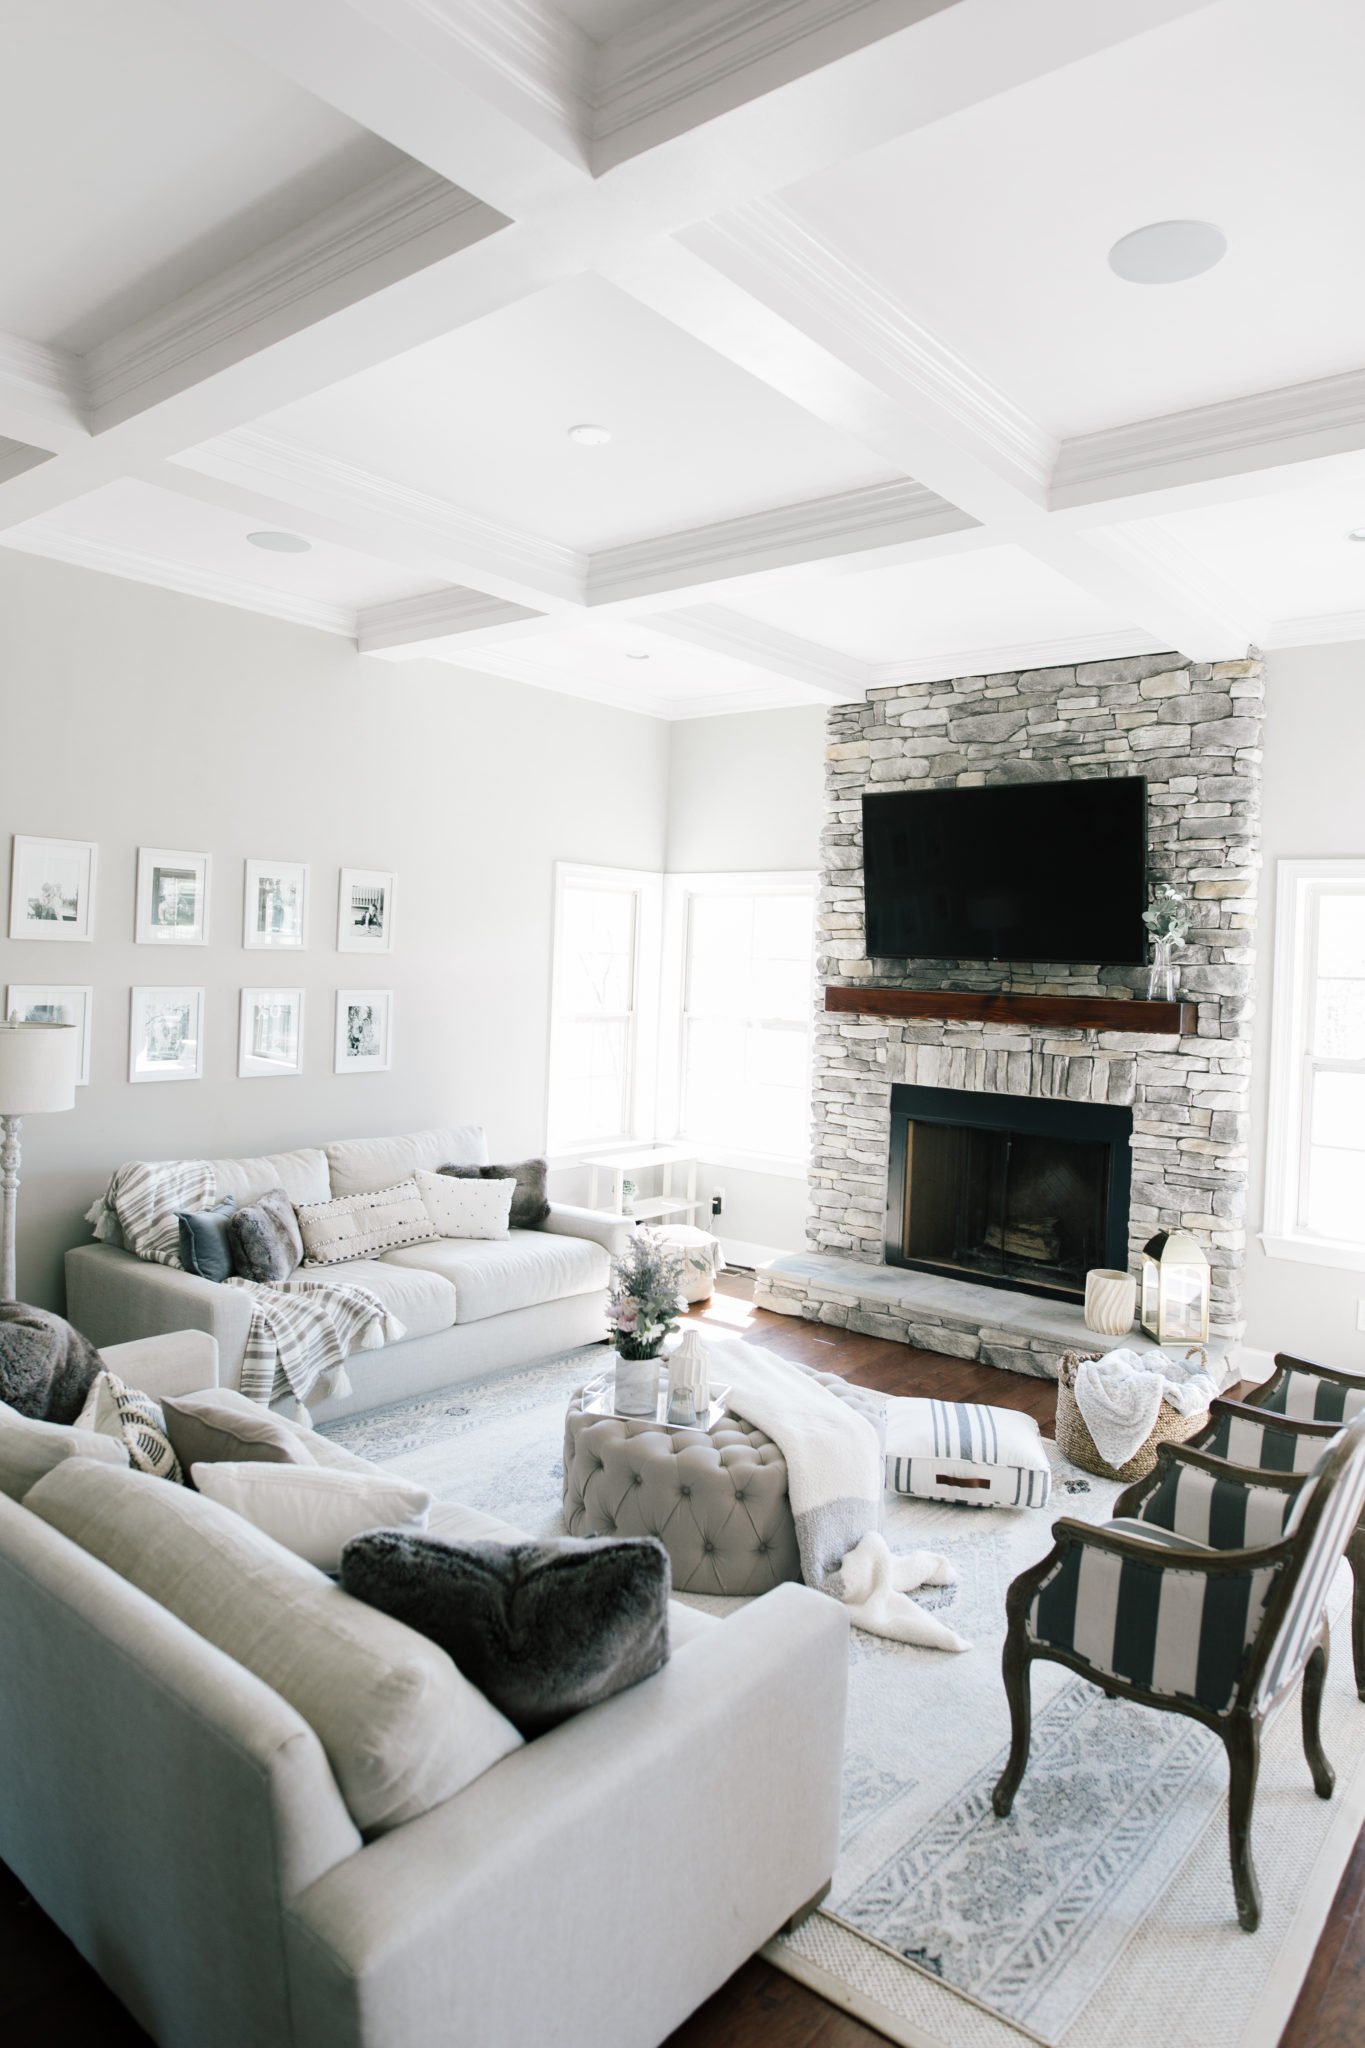 Home Decor: Neutral Living Room - Beaus and Ashley on Room Decor Pictures  id=75571